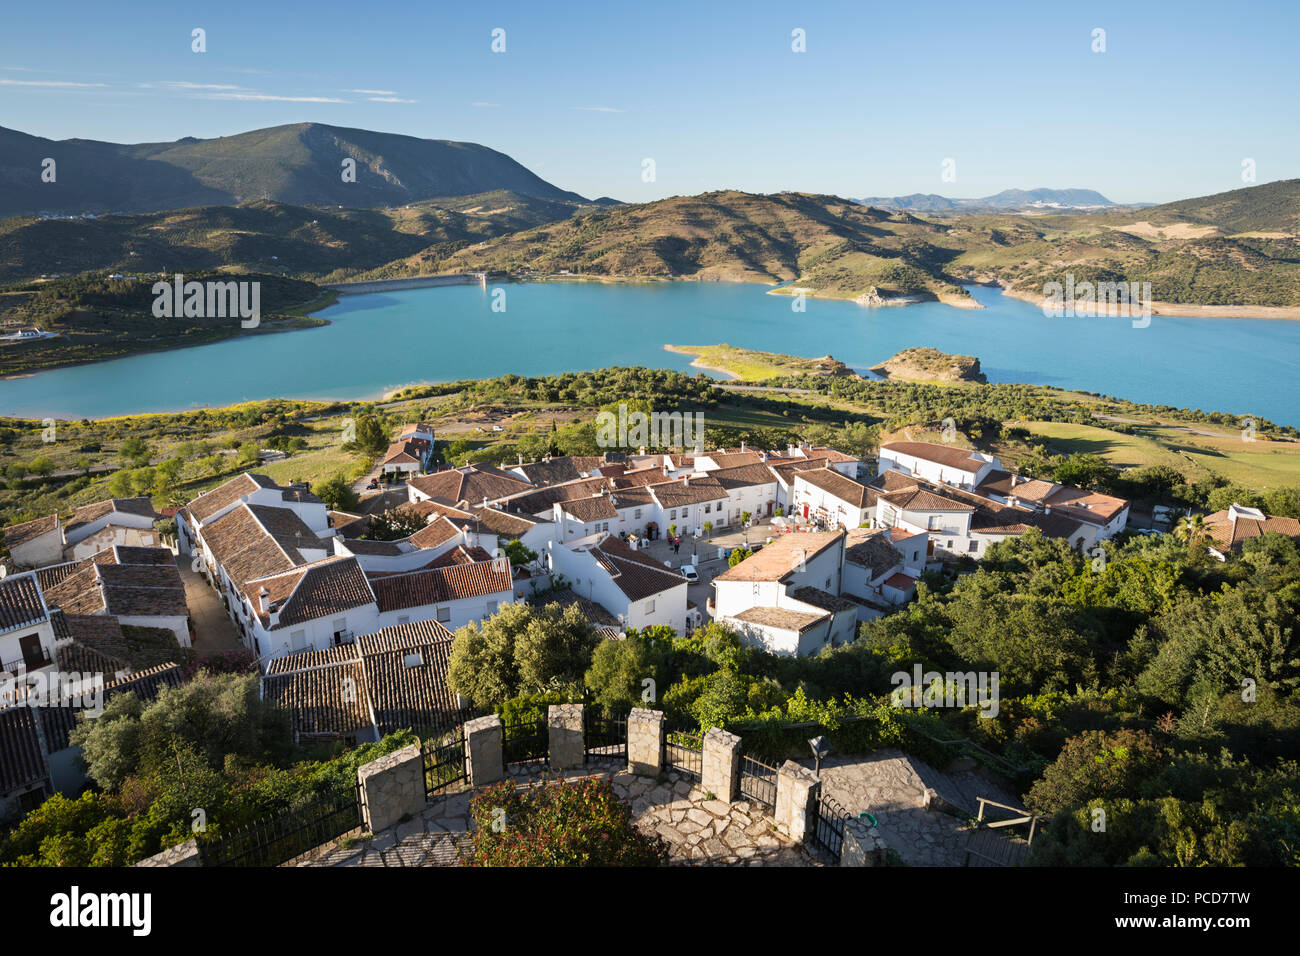 View of white village and turquoise coloured reservoir, Zahara de la Sierra, Sierra de Grazalema Natural Park, Andalucia, Spain, Europe - Stock Image